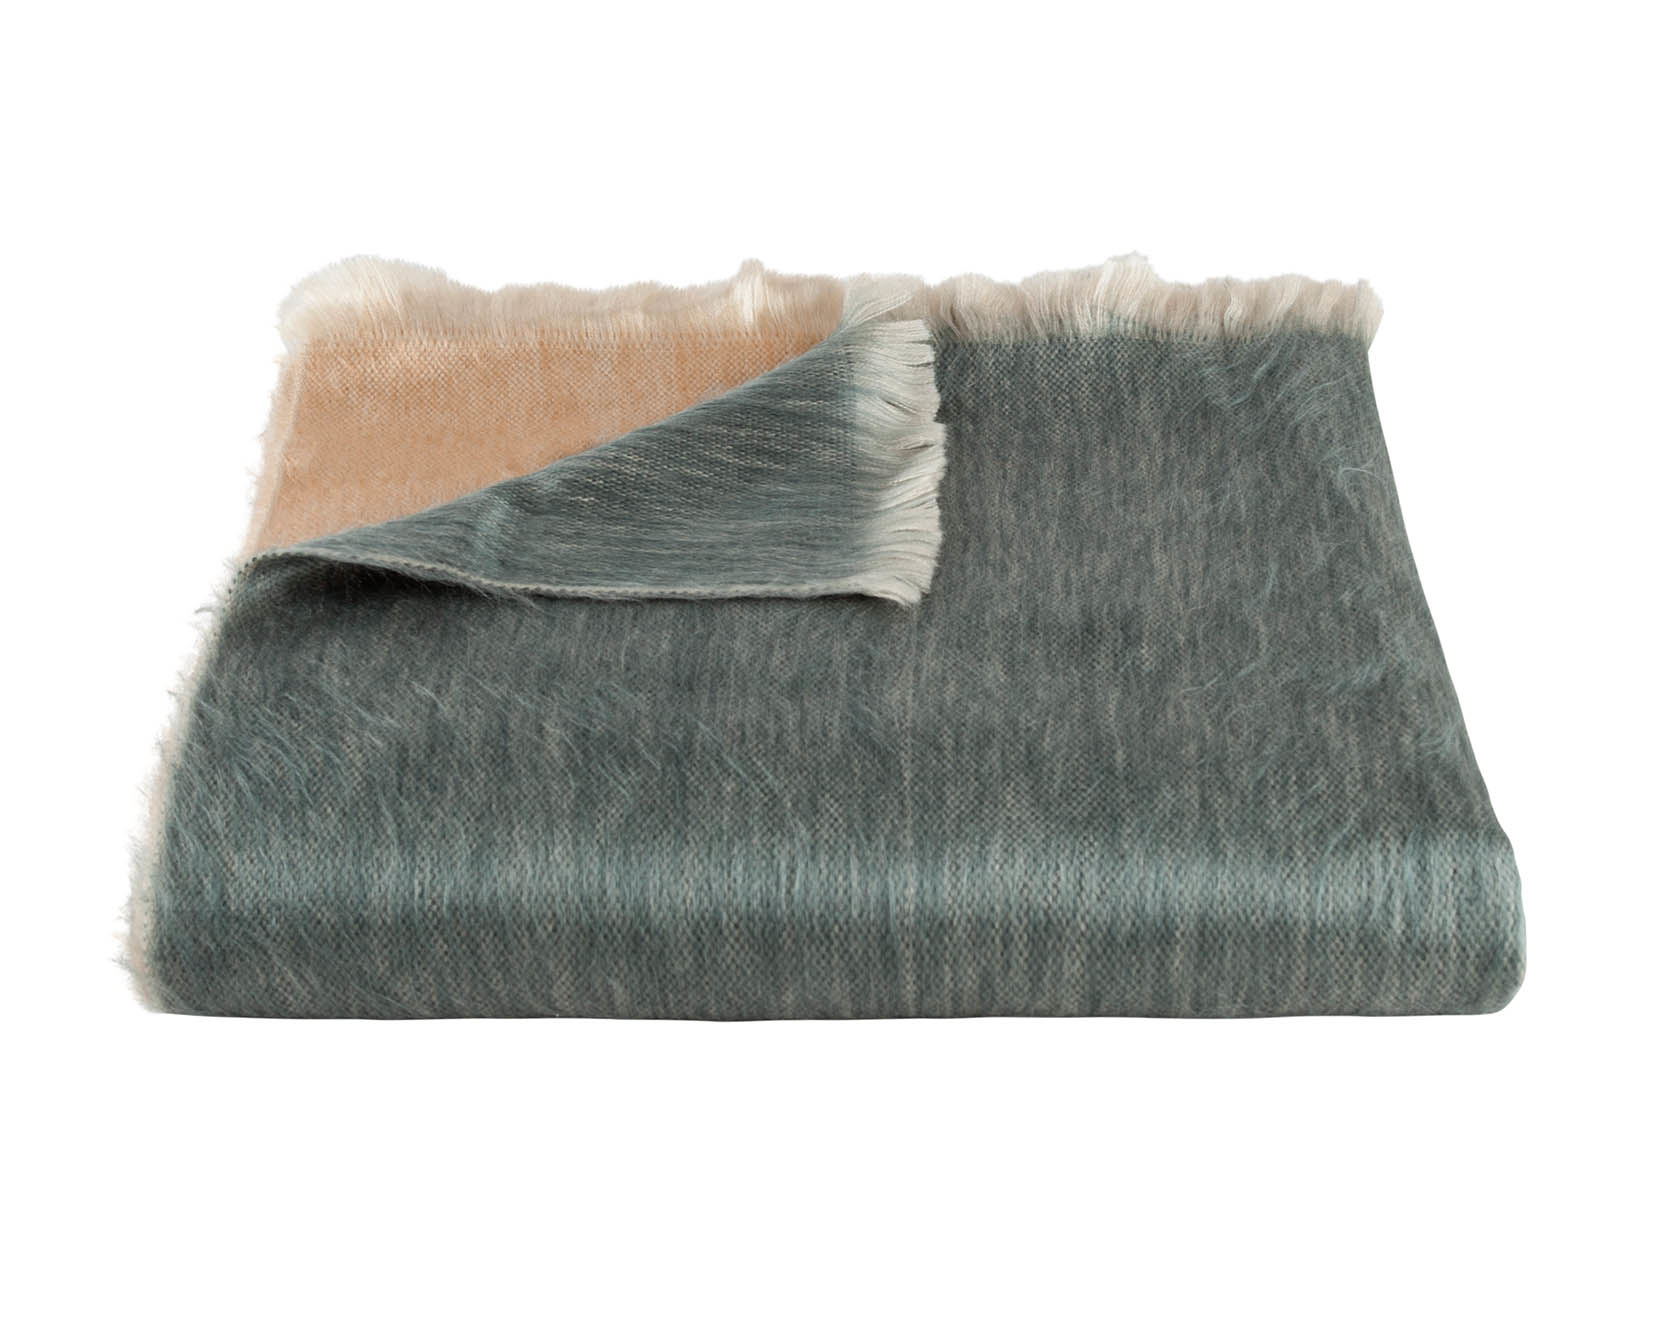 OMBRE - Teal Oyster